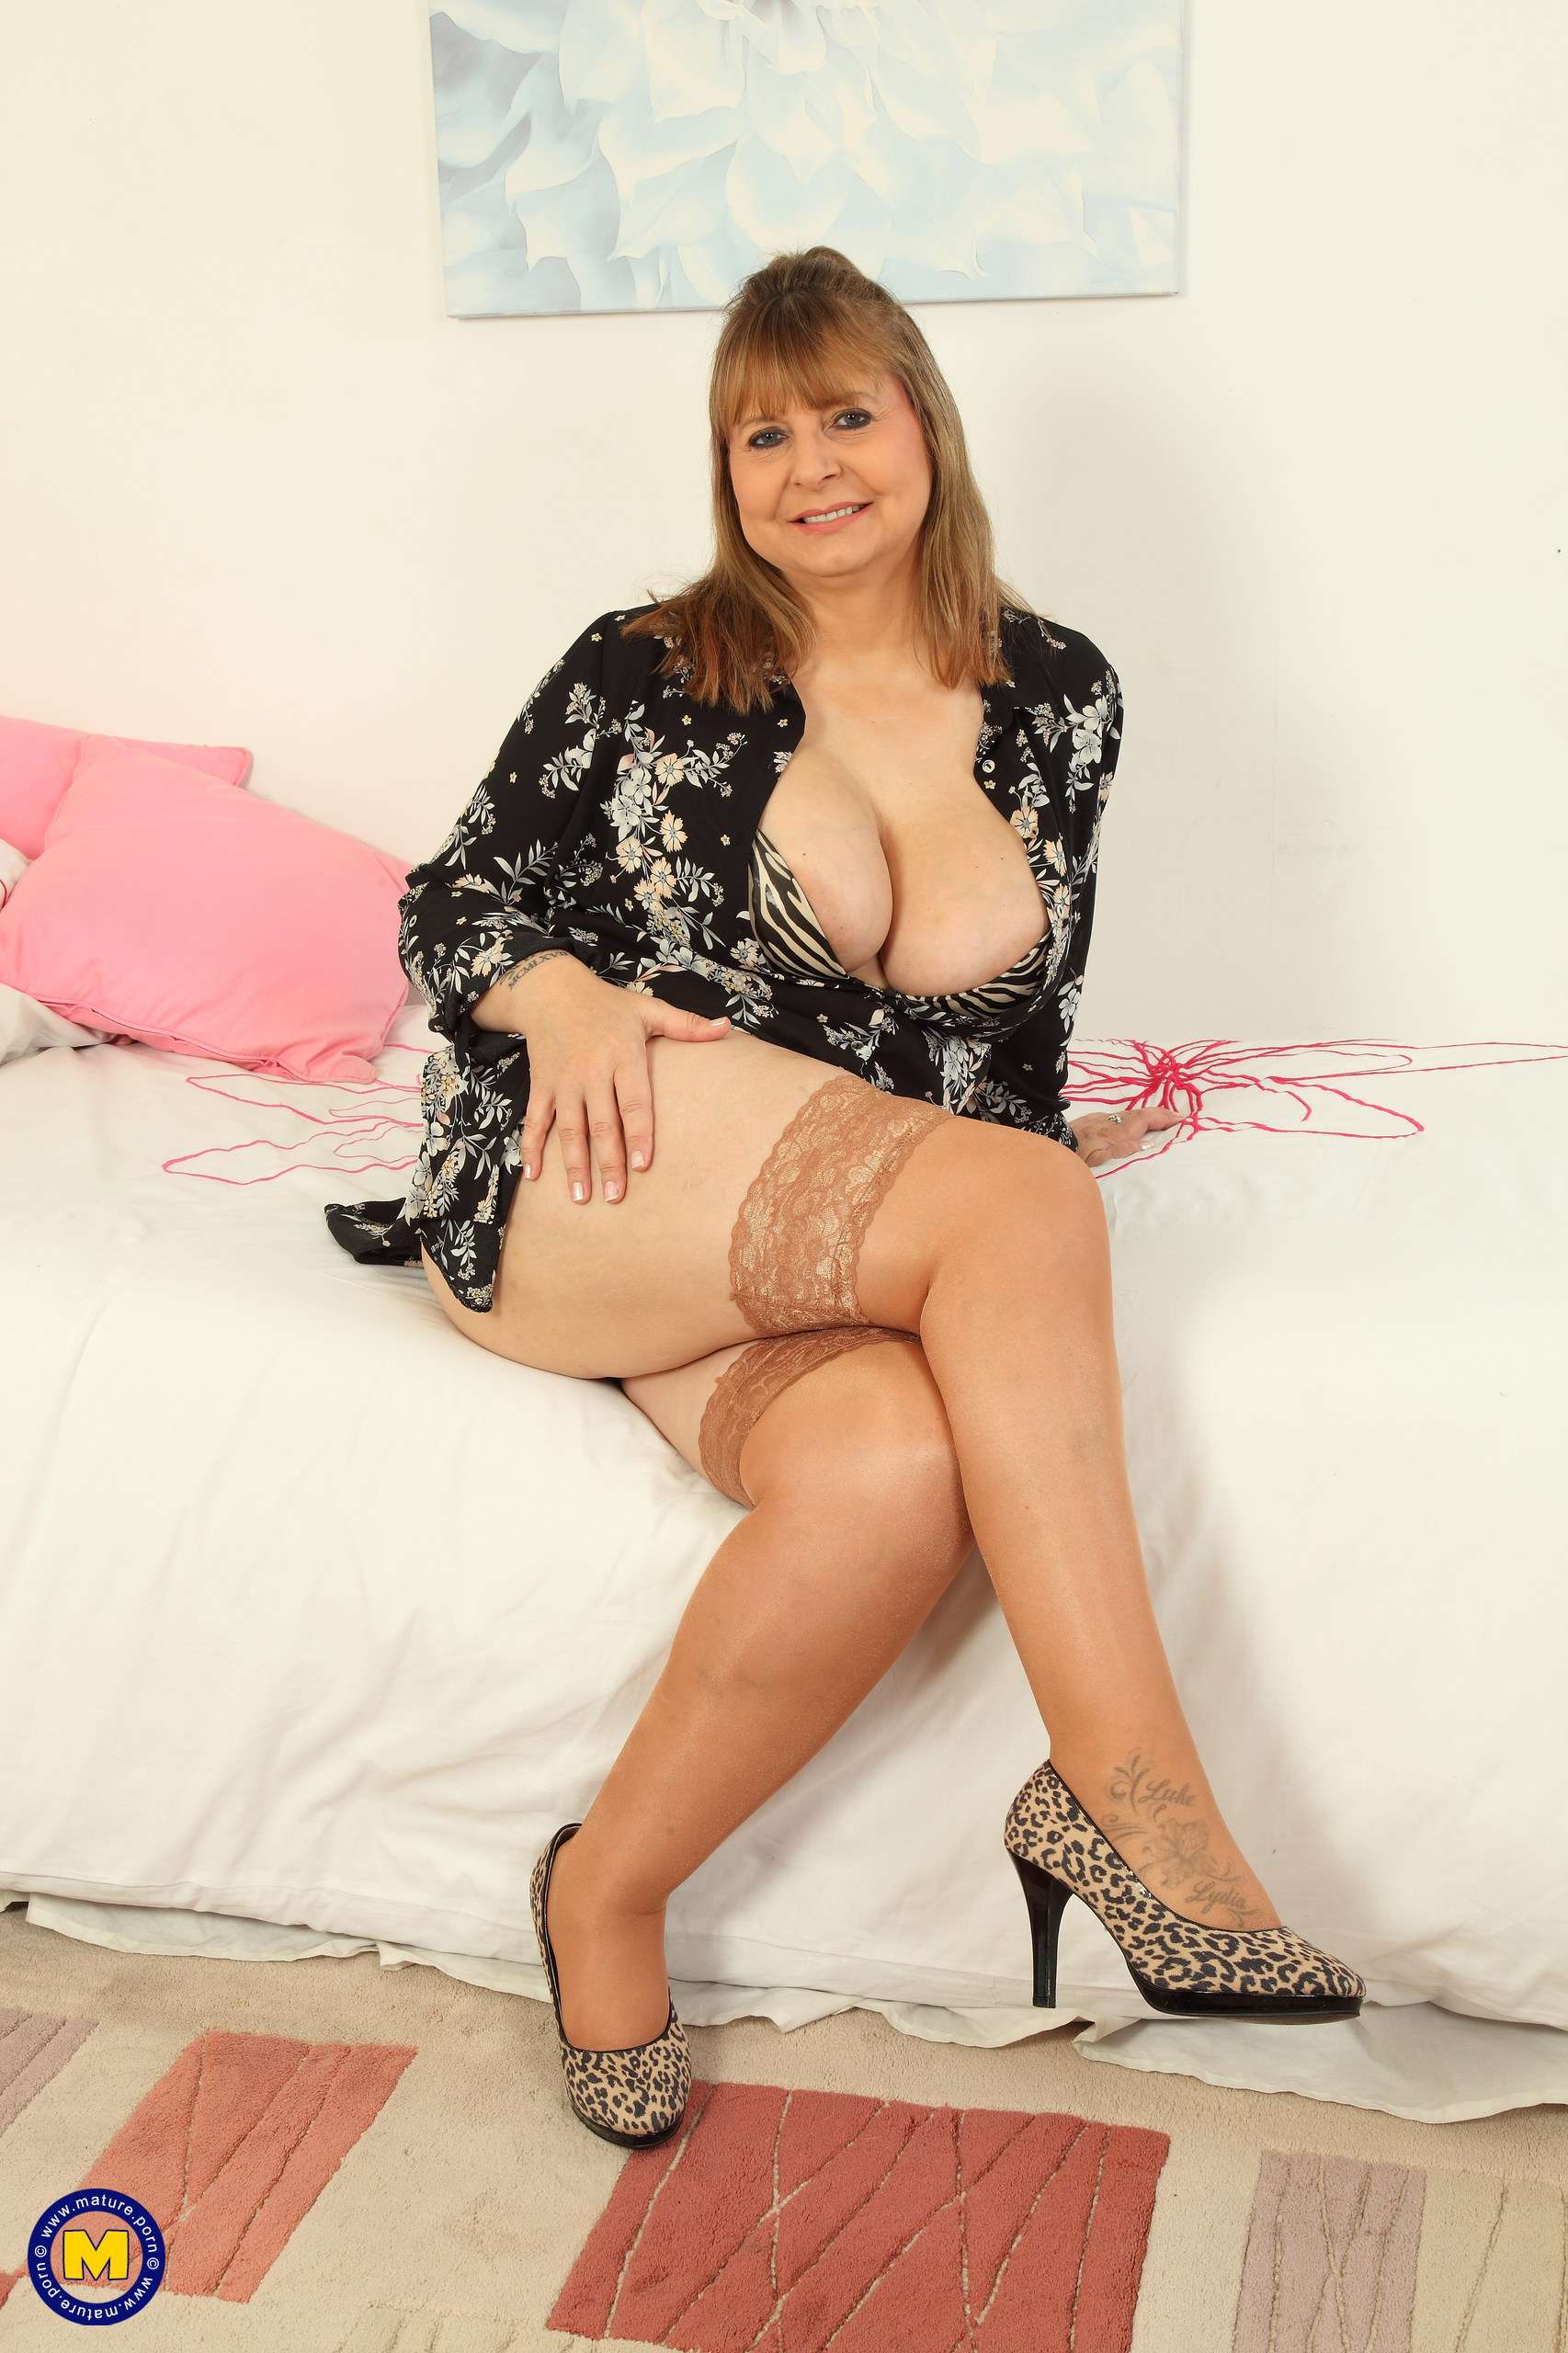 Alexa Mature Breast Porn big breasted alexa shows off her naughty side at mature.nl